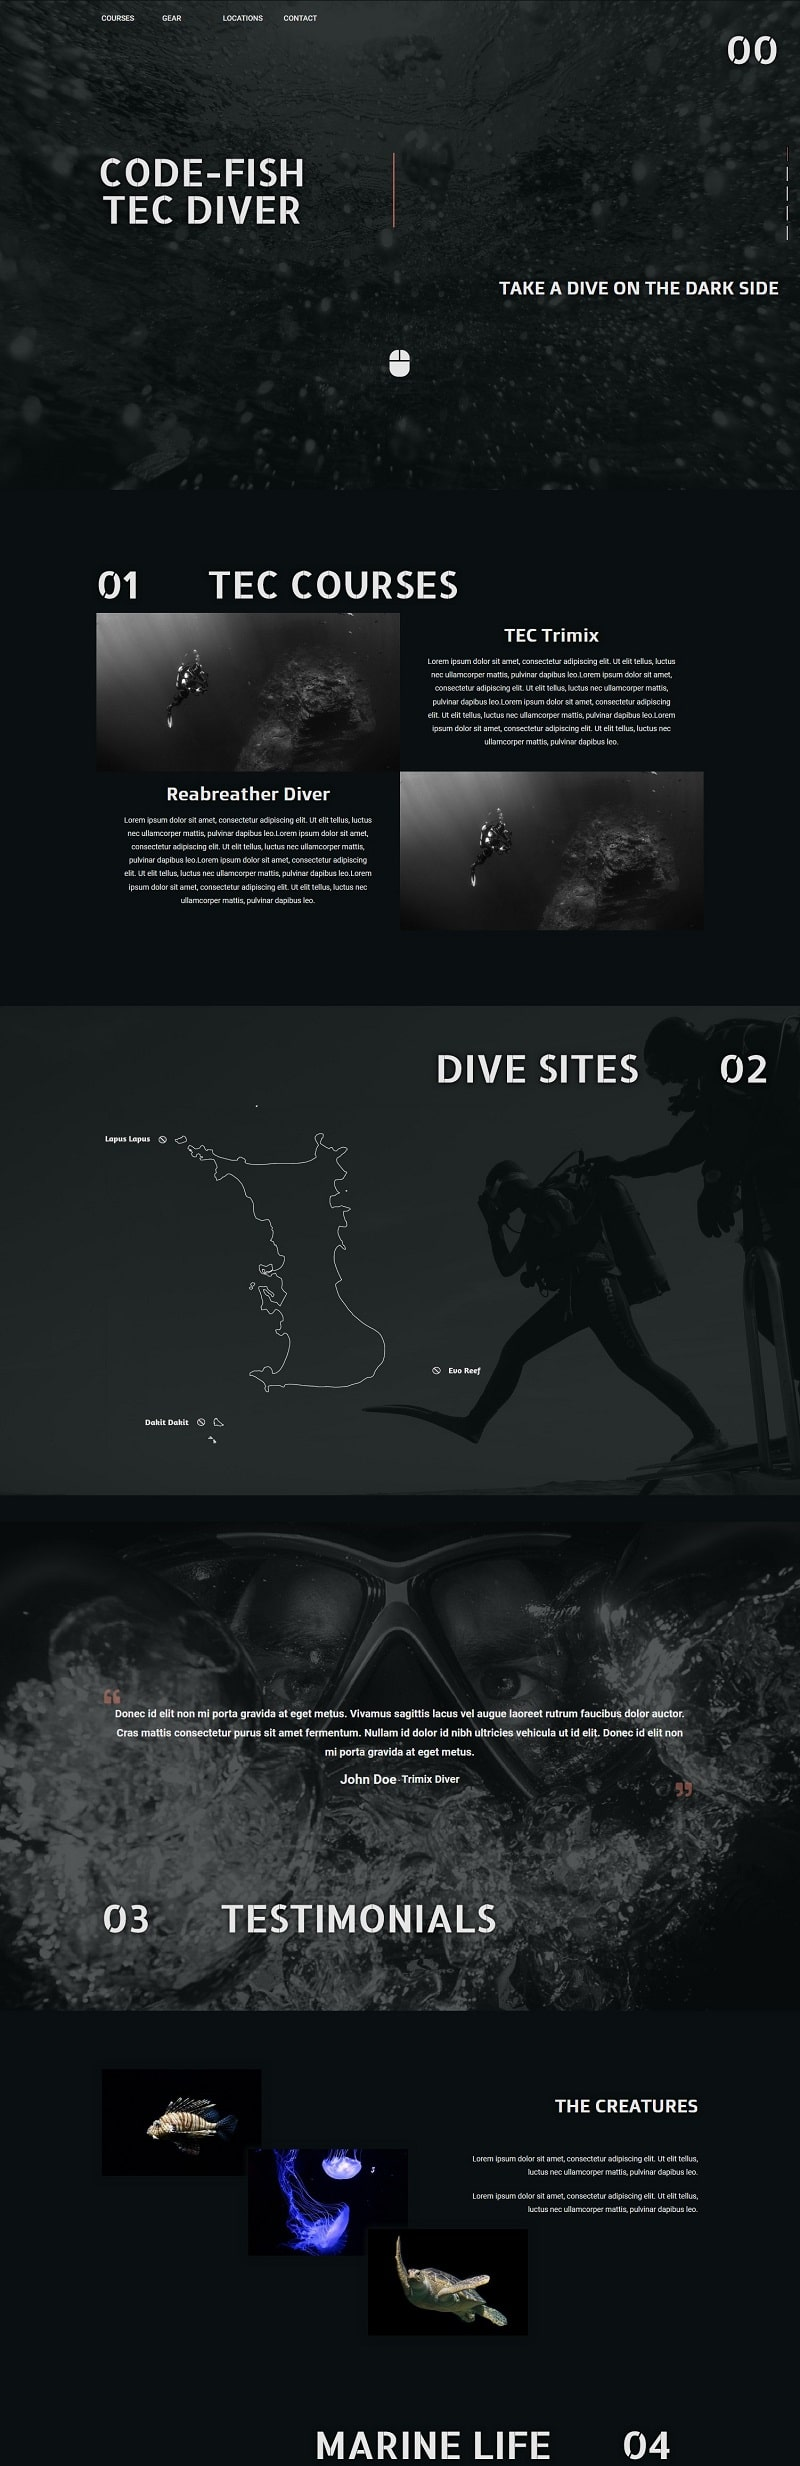 Tecnical diving homepage. Design using dark theme